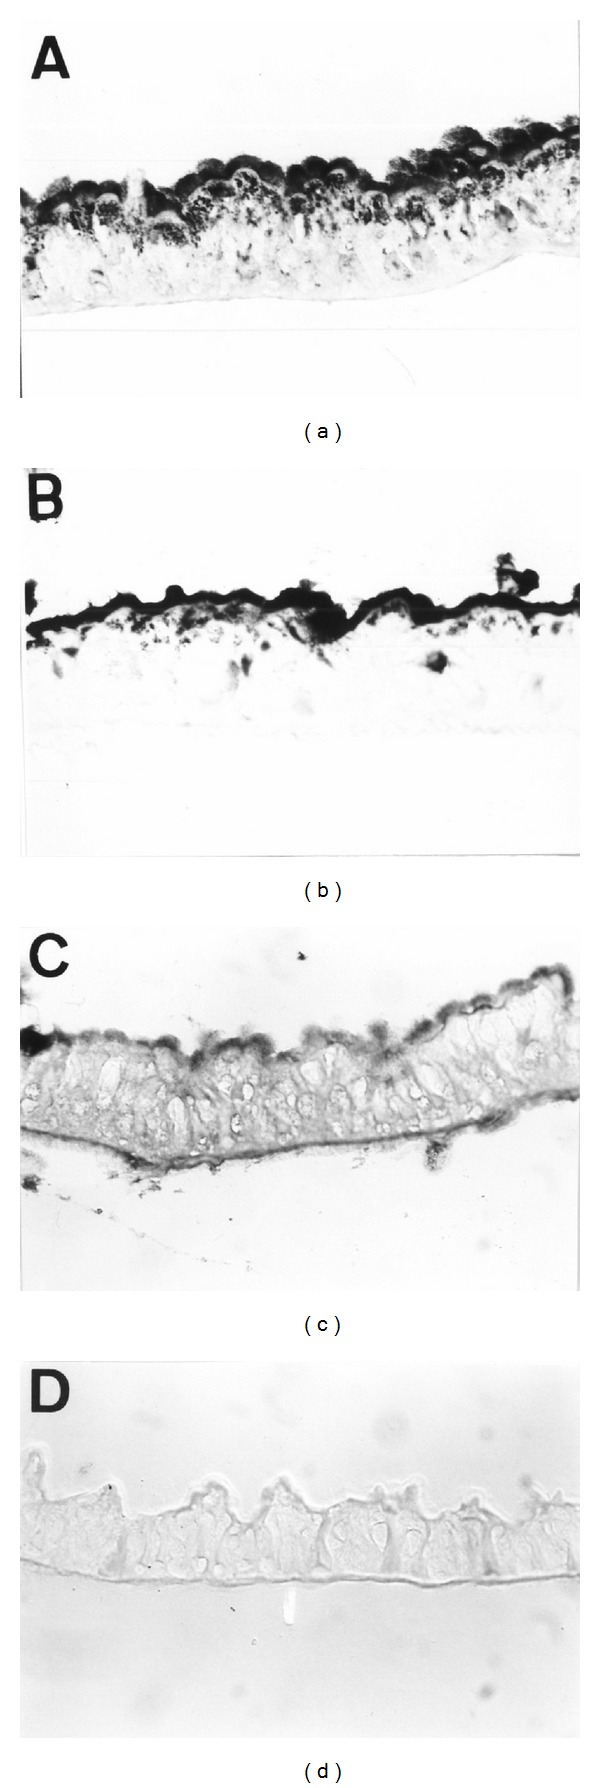 Detection of in vitro bound biotinylated ICPs on A. gemmatalis guts tissue: Cry1Aa (a), Cry1Ac (b), and Cry1Ba (c). Negative control (d) when tissue sections were incubated with the biotinylated ICPs (e.g., Cry1Aa) and omission of AP-conjugated streptavidin or when tissue section were incubated with the AP-conjugated streptavidin and omission of biotinylated ICPs. Light micrograph obtained with Nomarski differential interference contrast illumination.